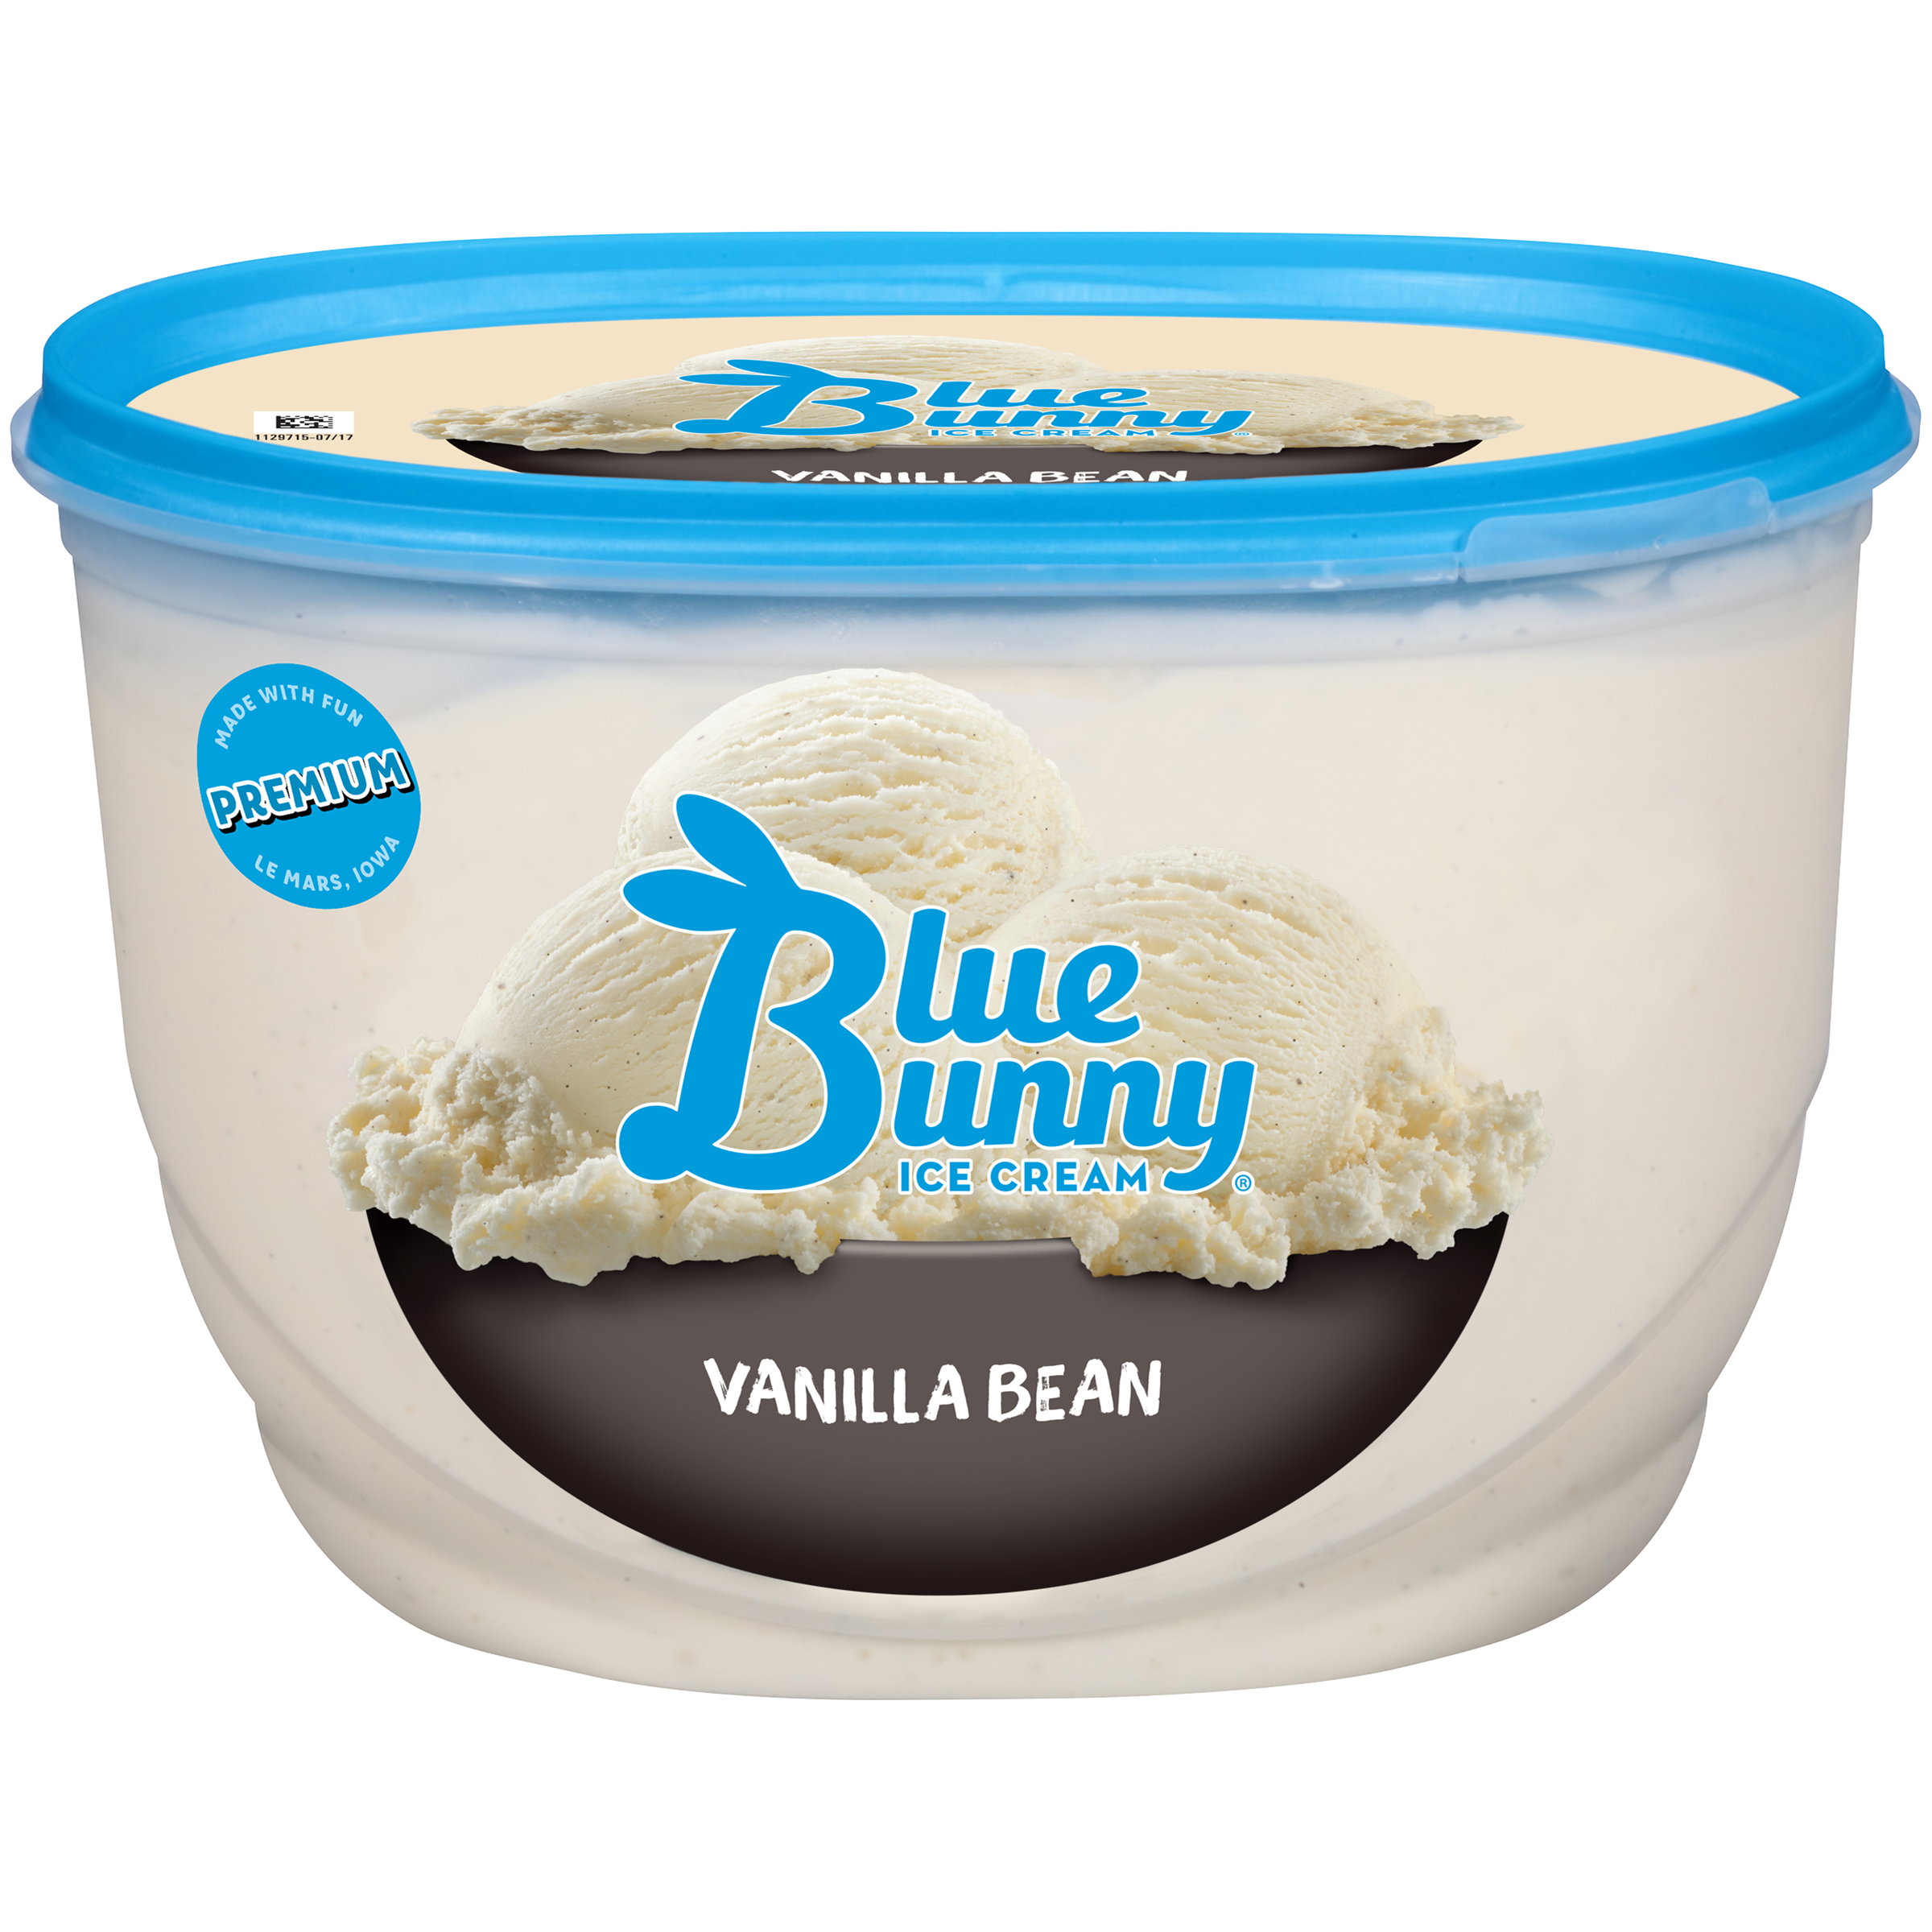 Blue Bunny Vanilla Bean Ice Cream, 48 fl oz